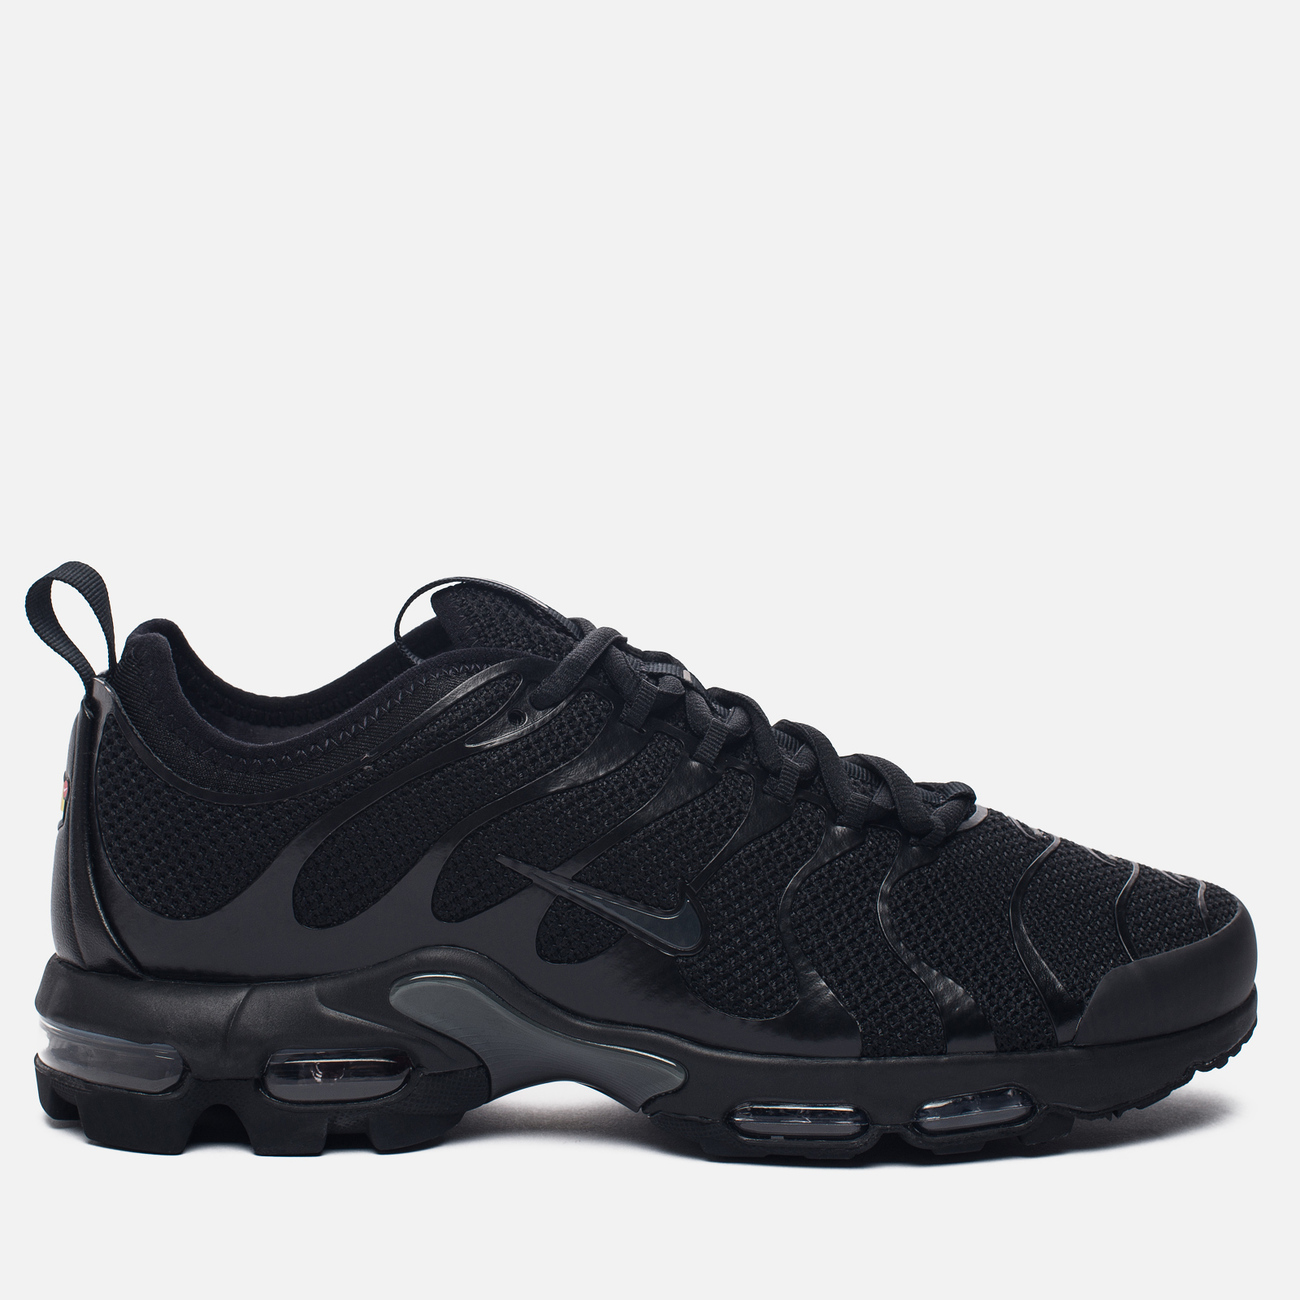 Nike TN Air Max Plus SE Spray Painted